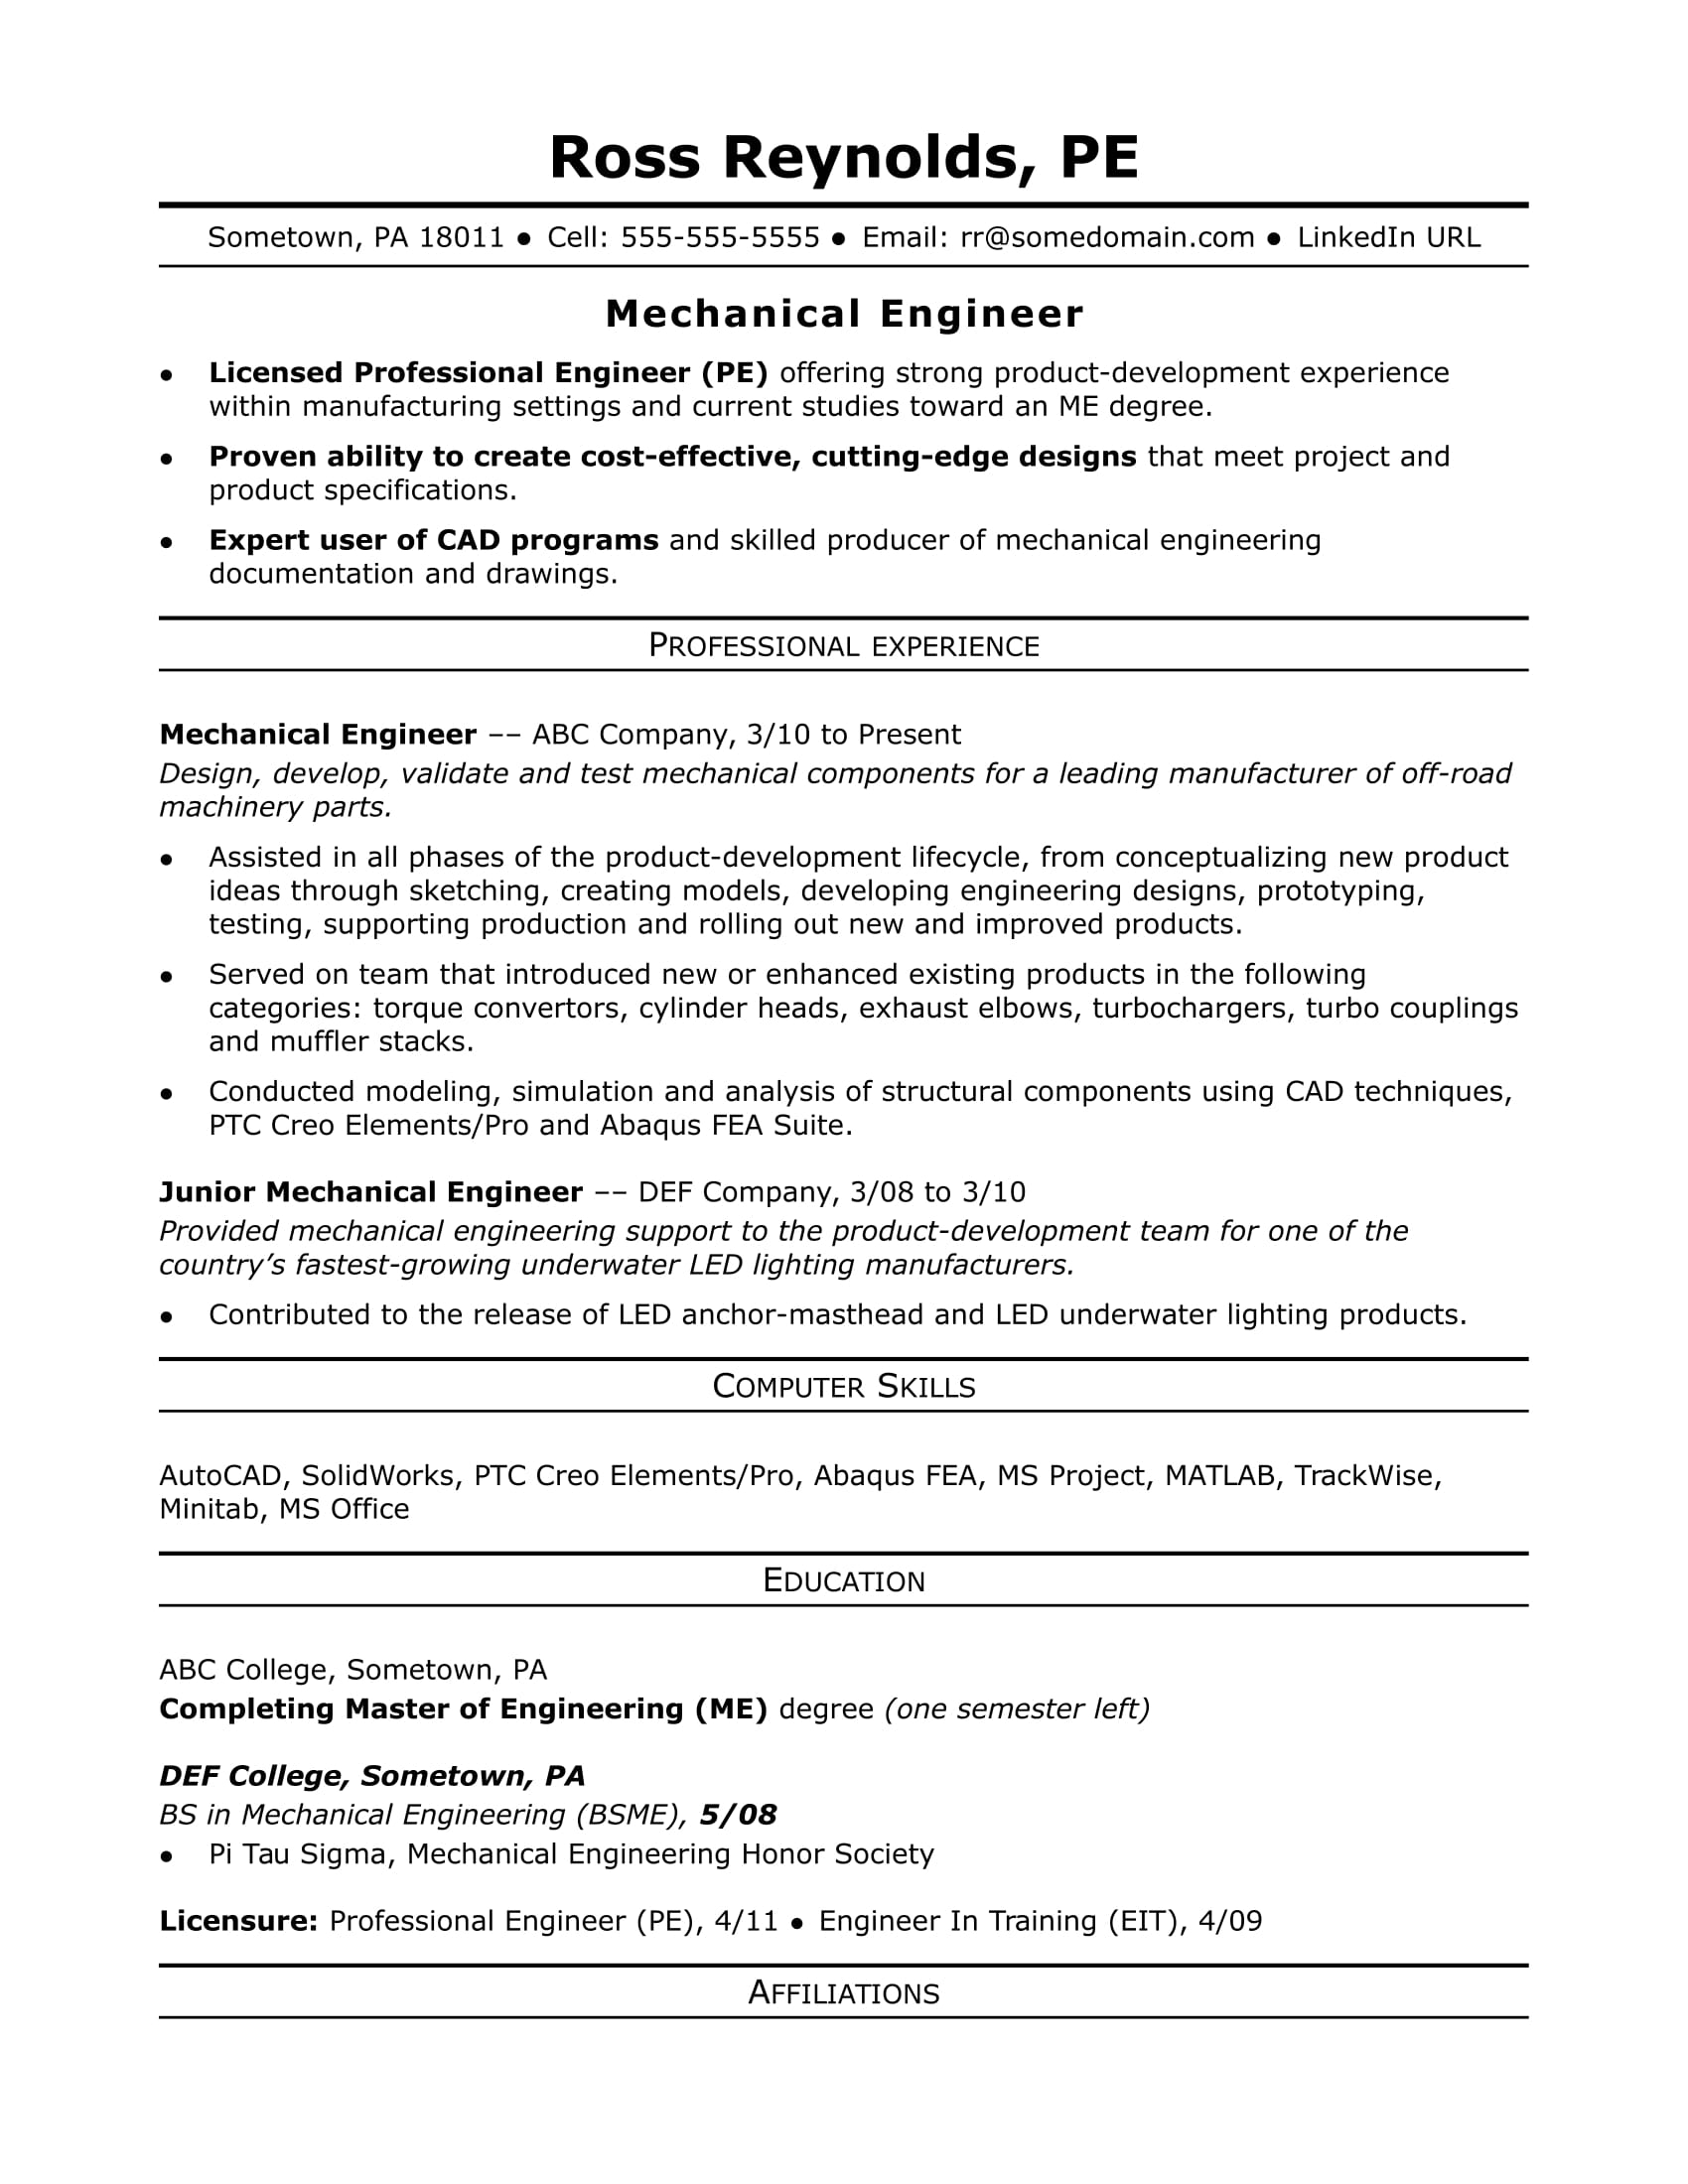 sample resume for a midlevel mechanical engineer - Mechanical Engineer Resume Template